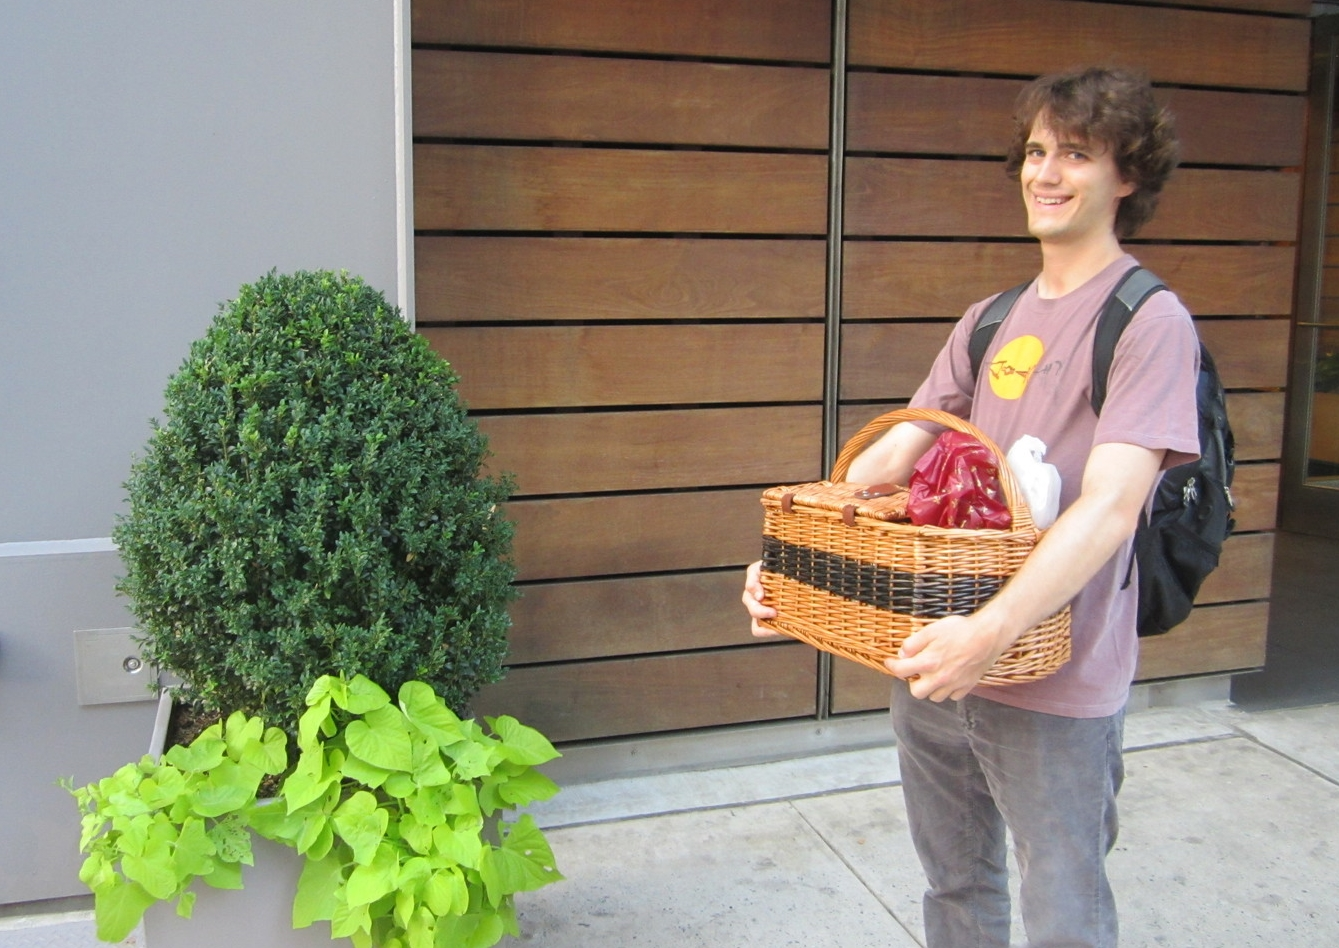 So Simon very chivalrously carried it all the way.